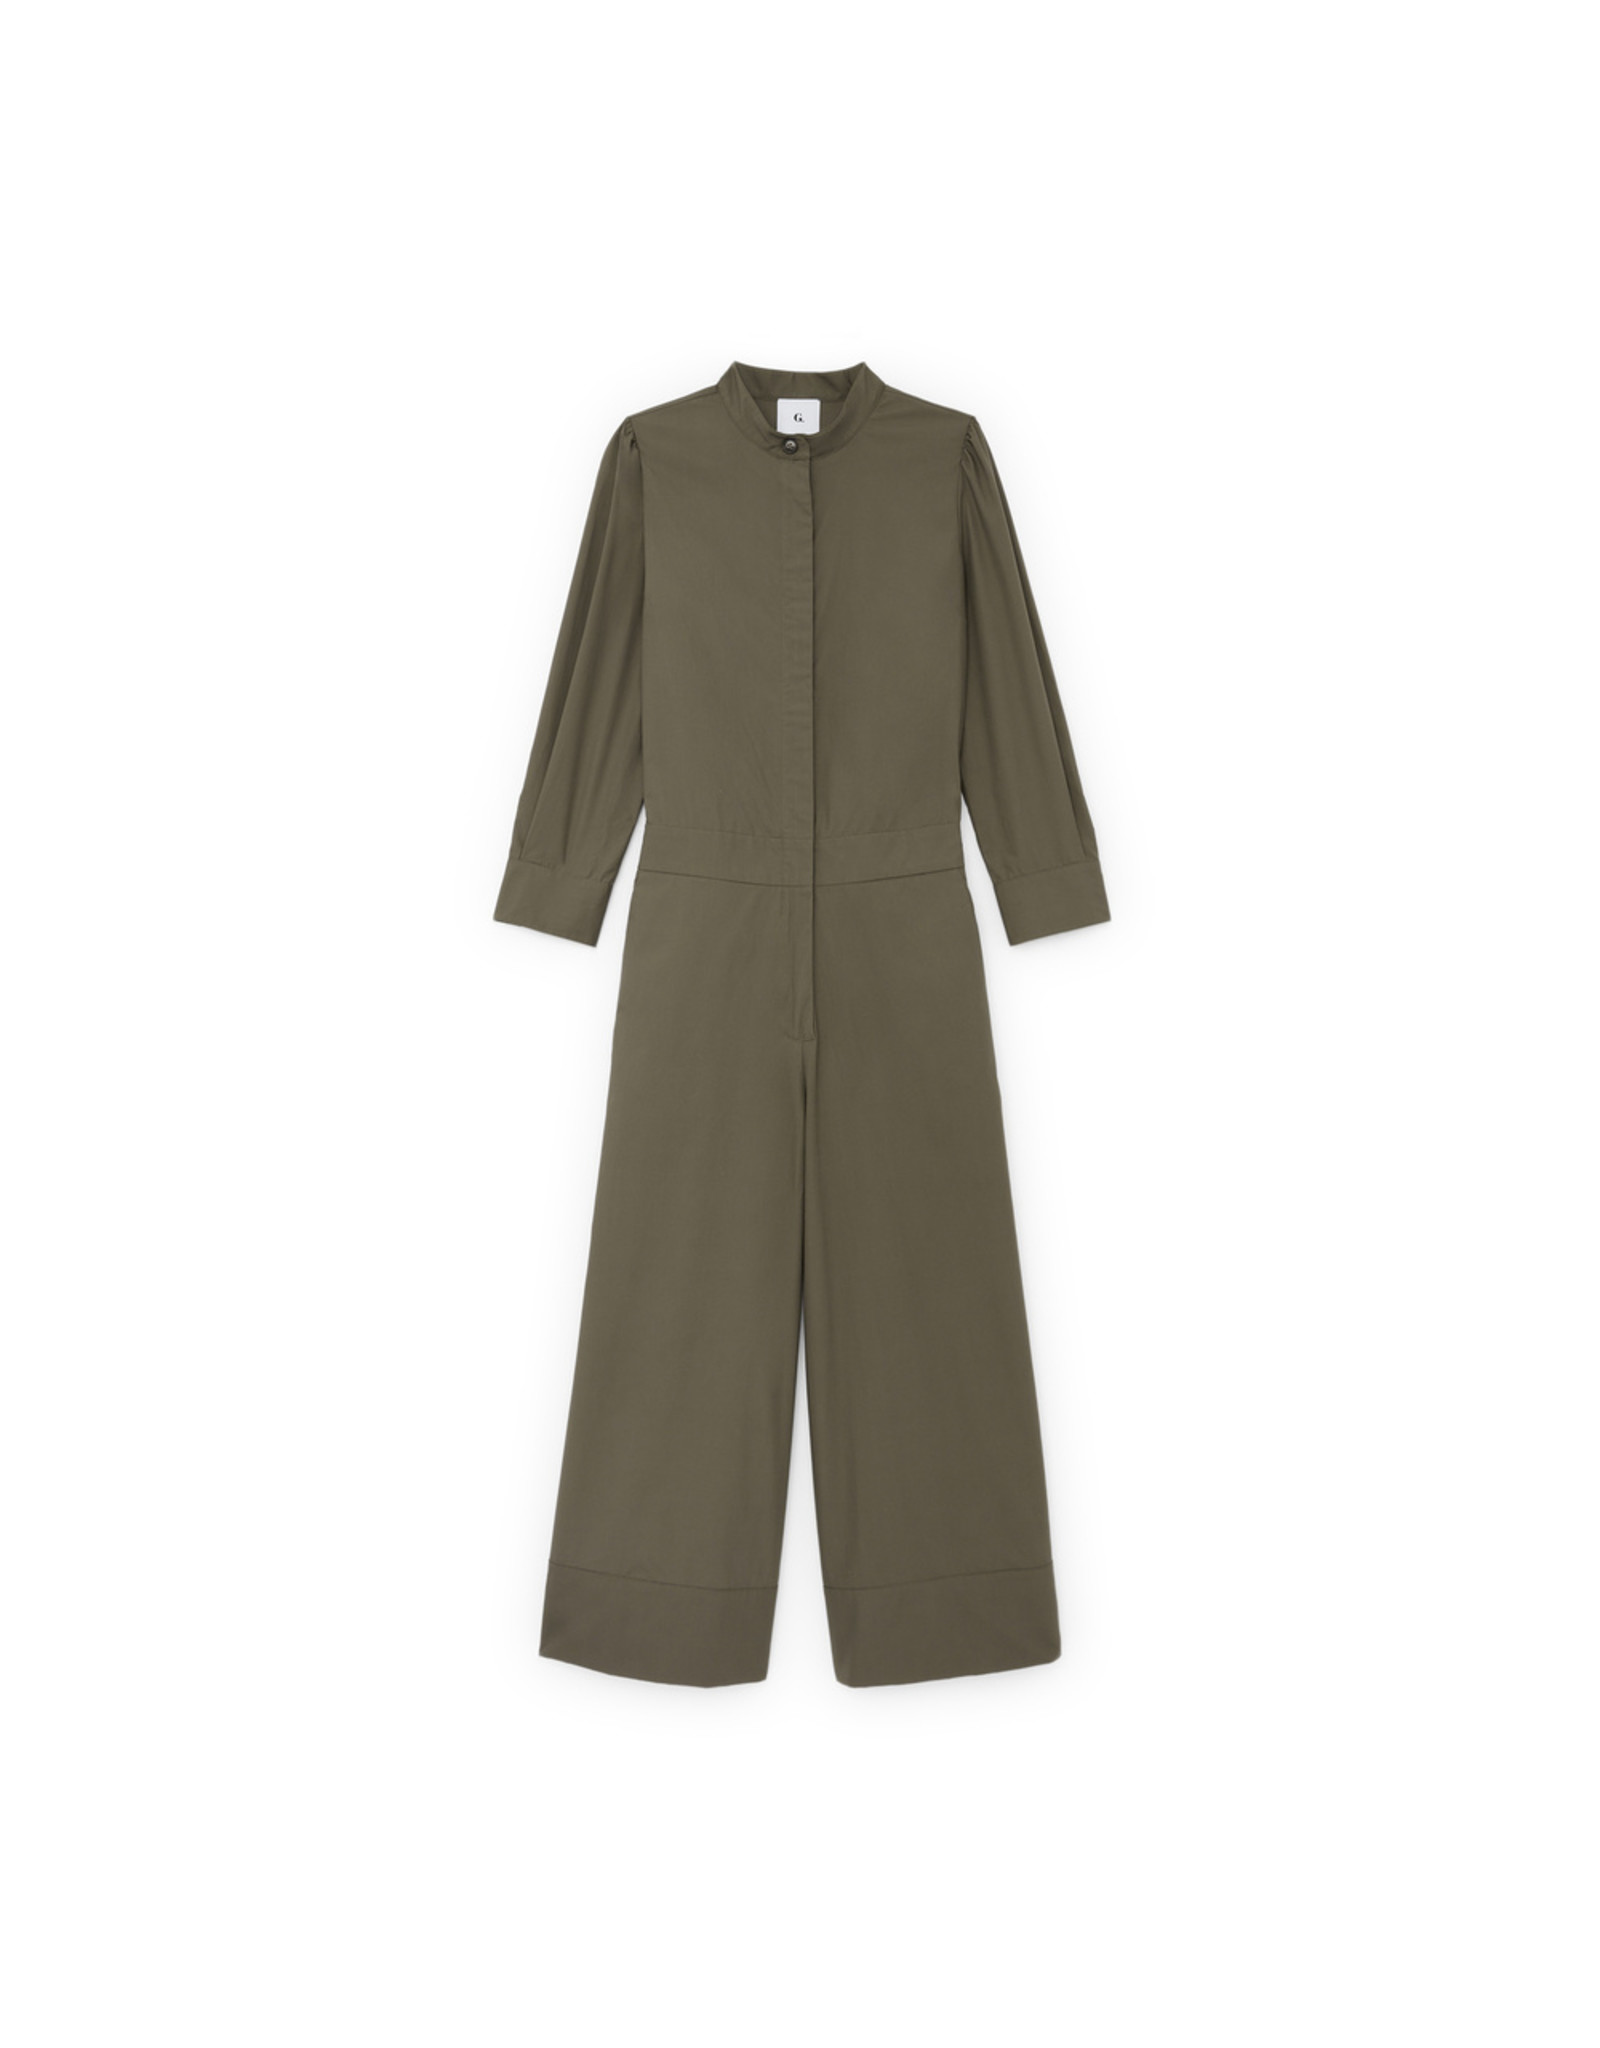 G. Label G. Label Blair Jumpsuit (Color: Army Green, Size: 2)